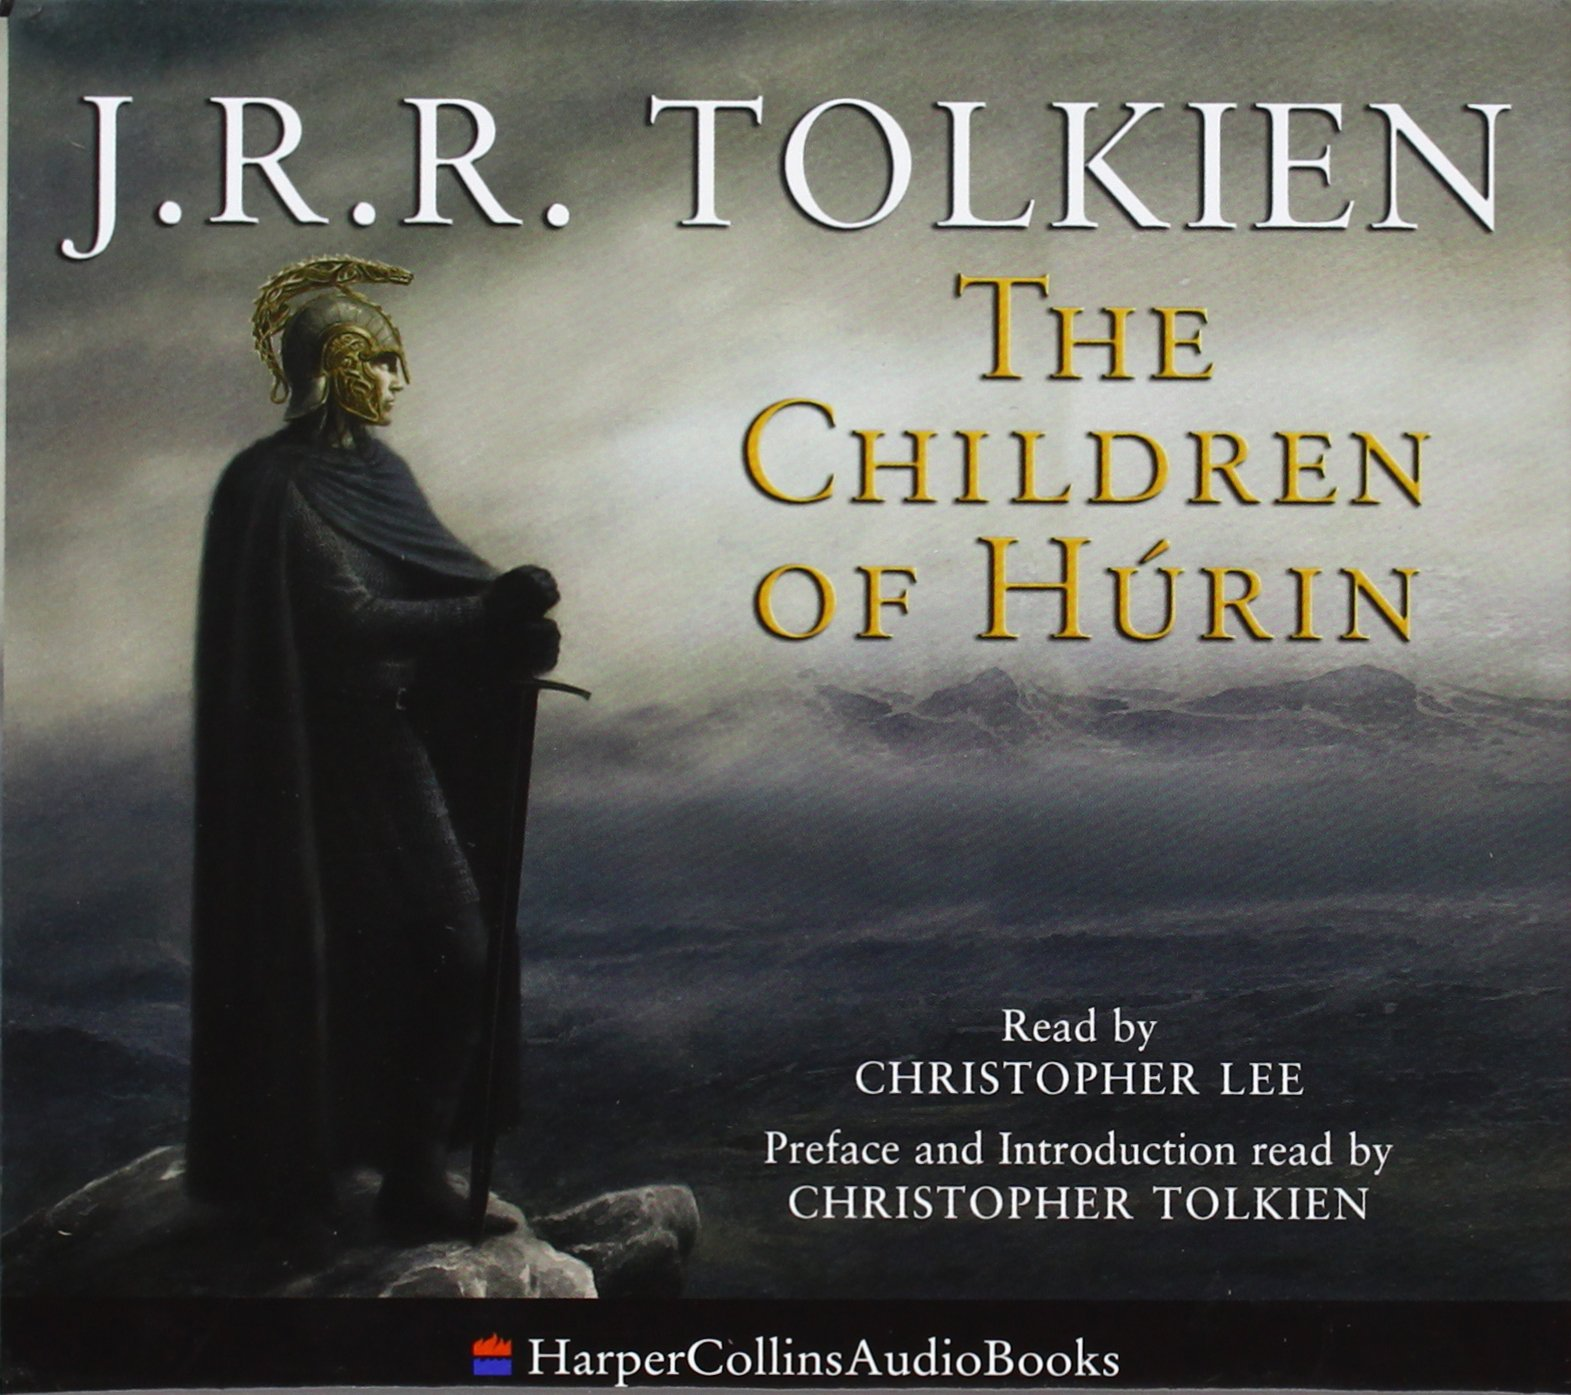 """The Children of Húrin"" – A Middle Earth work I actually didn't enjoy"